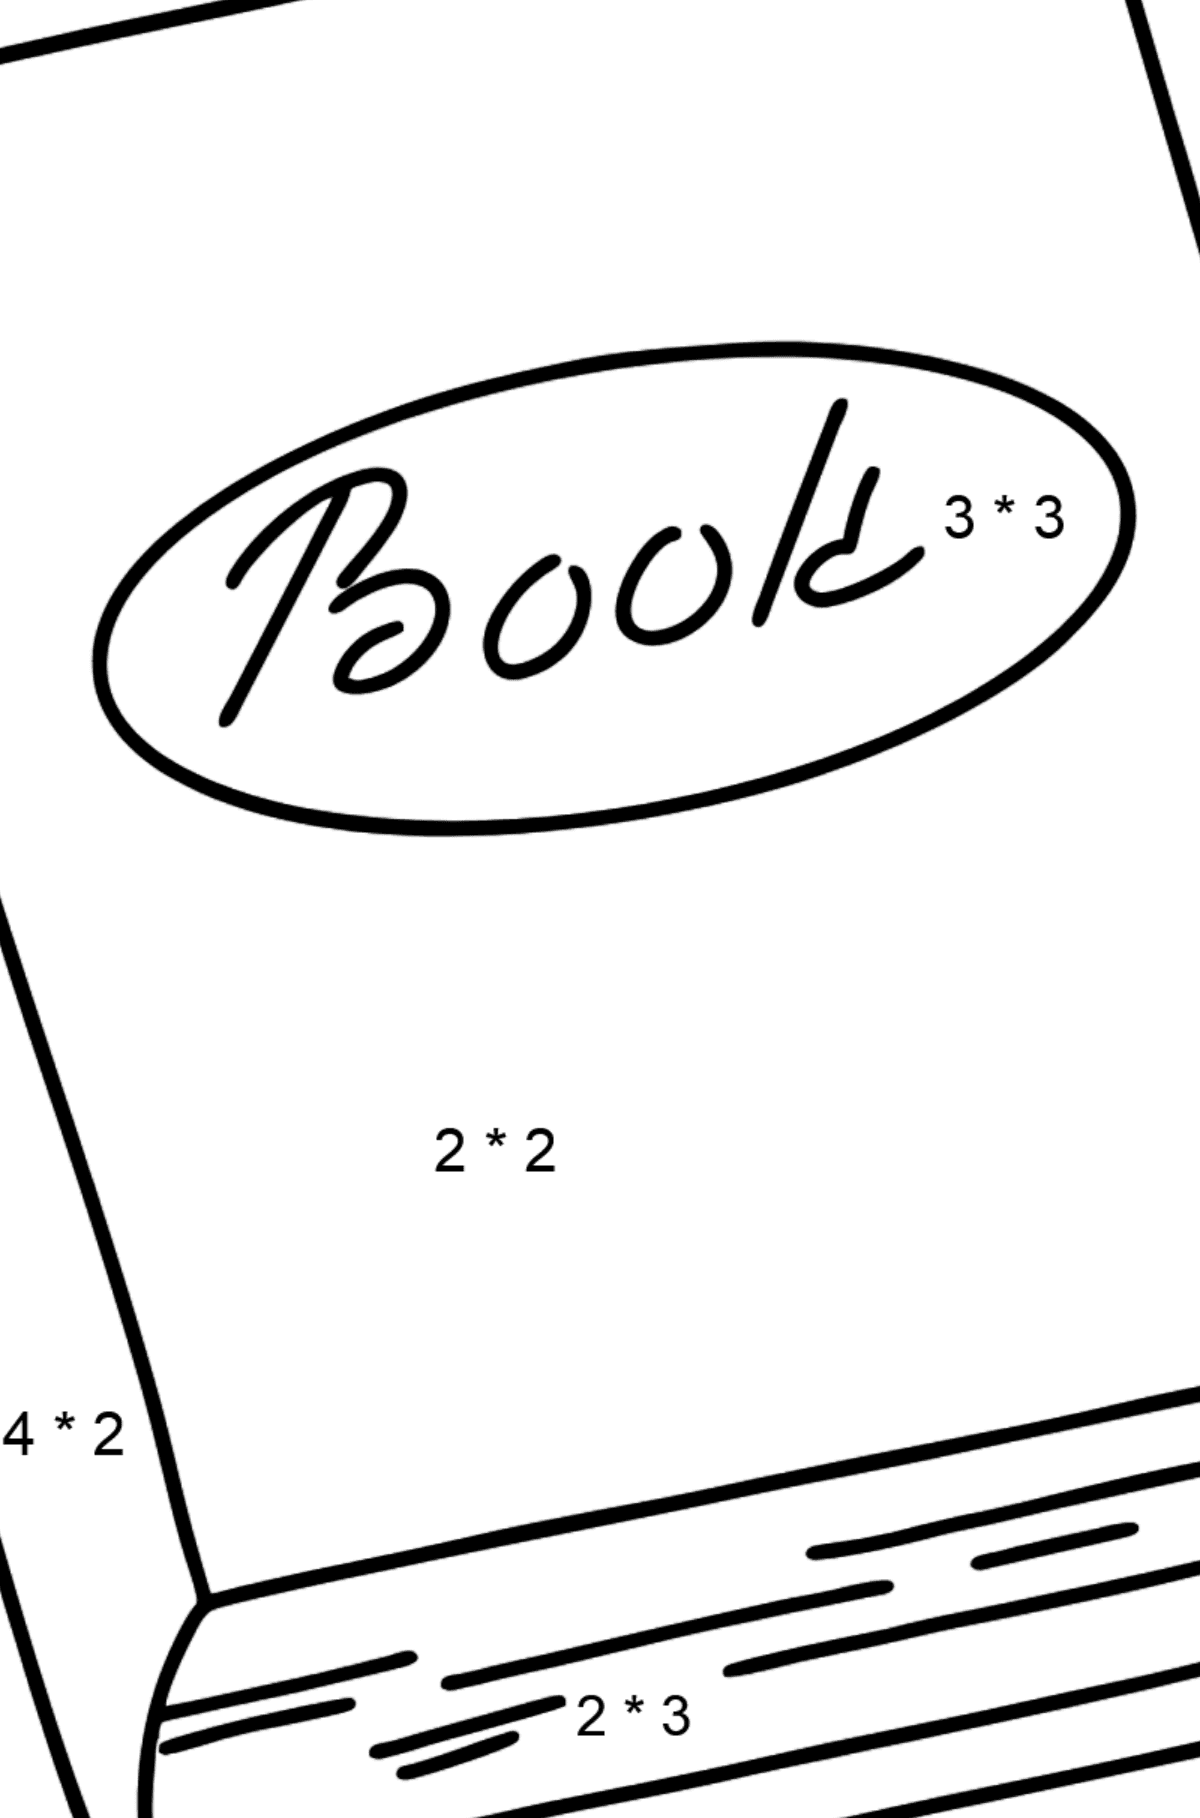 Book coloring page - Math Coloring - Multiplication for Kids